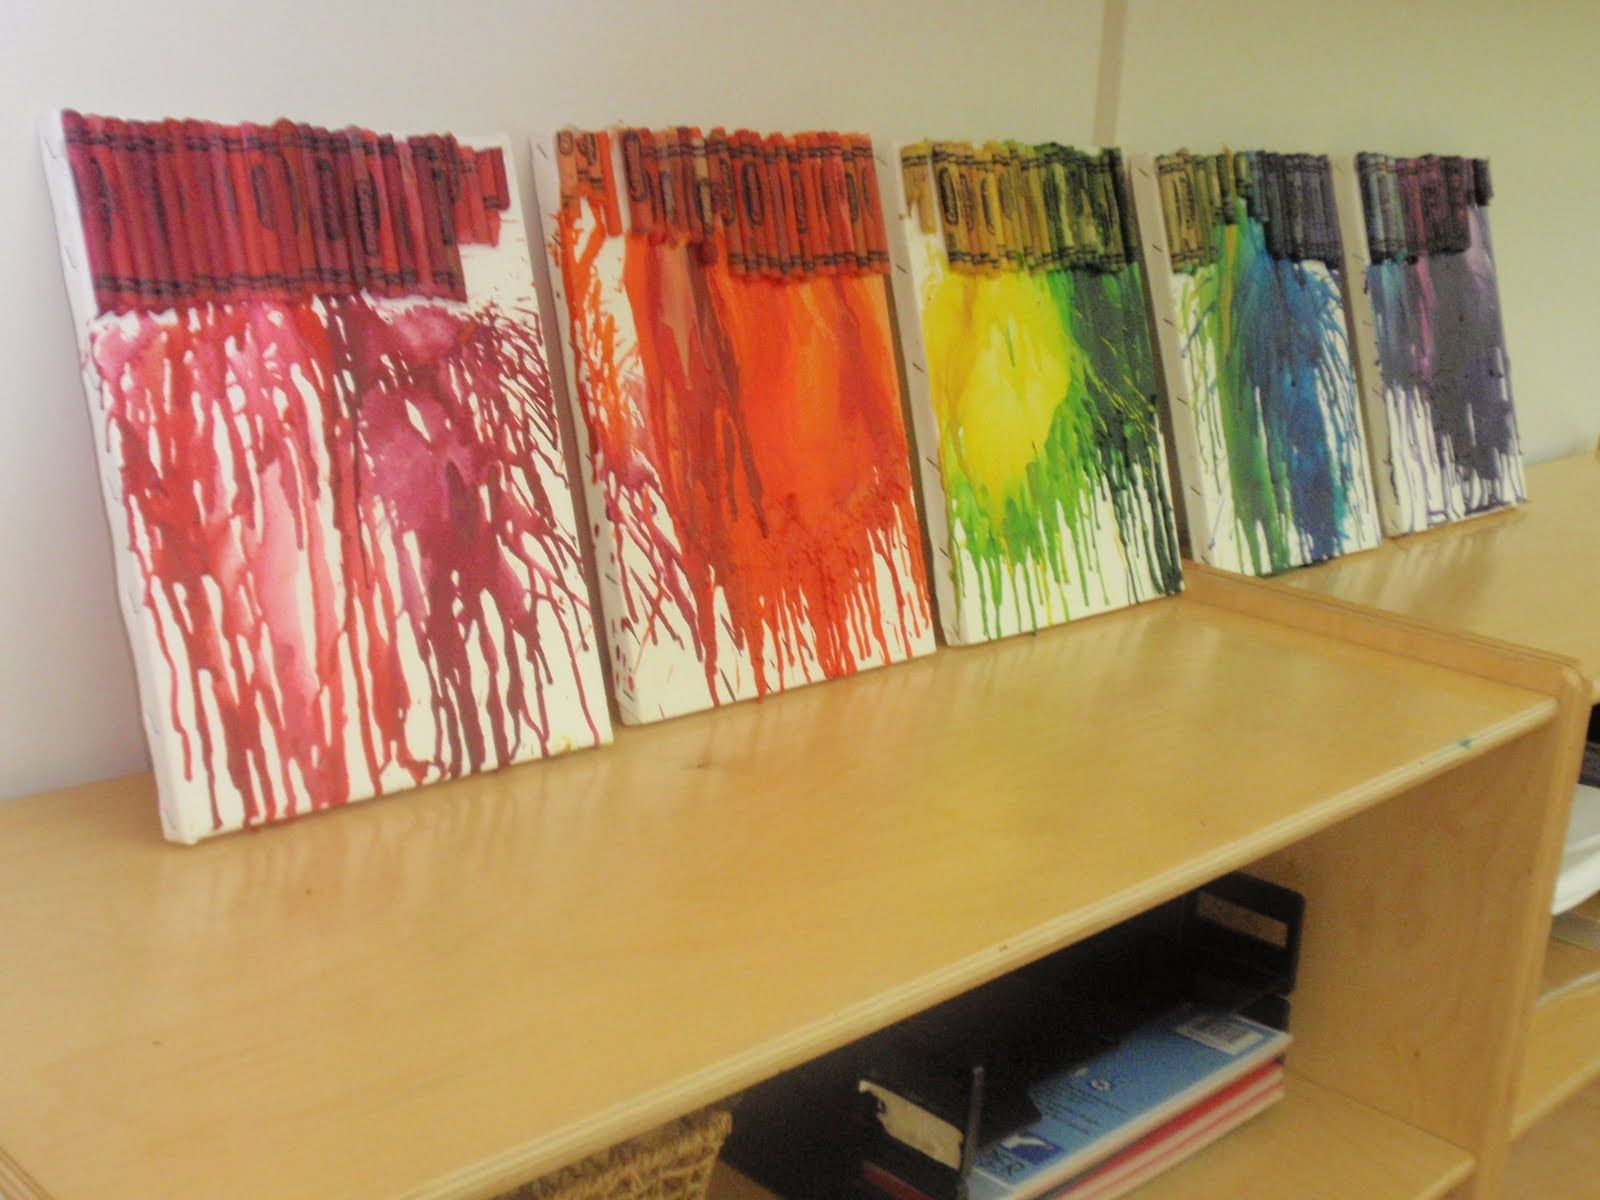 Crayons art! Aww for a kids room. So cute. And easy!